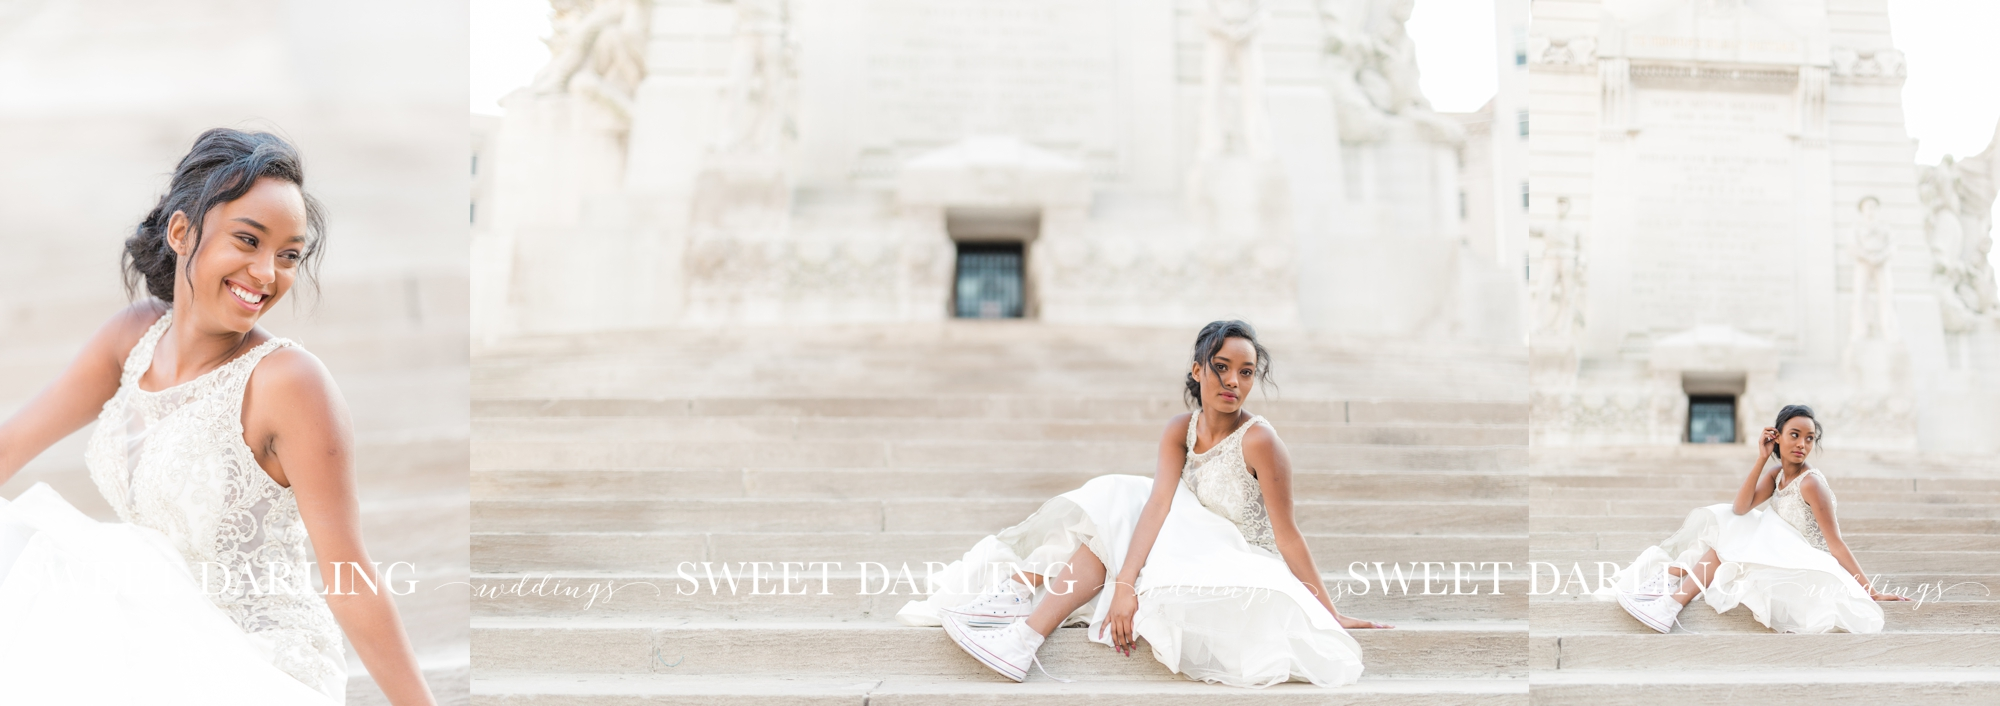 Indianapolis-Indiana-Wedding-photographer-urban-sweet-darling-champaign-IL_1490.jpg